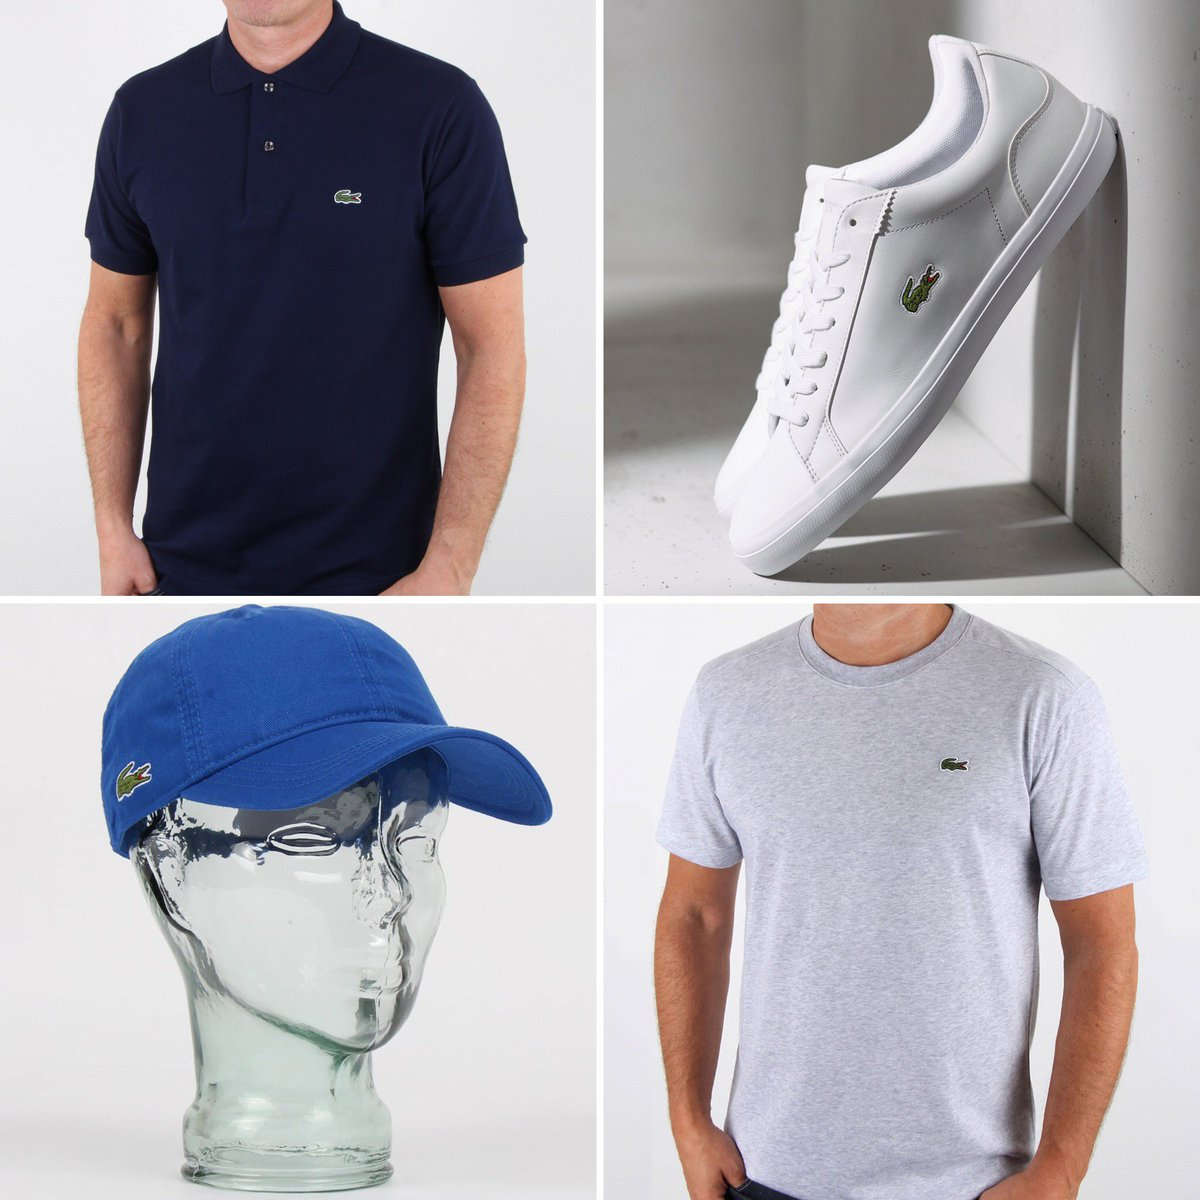 a64d9daad8d899 ... cap, all time classic leather trainers and logo tees. Shop the full  range of Lacoste here: http://ow.ly/Vsdh30kTTAL #lacoste  pic.twitter.com/gcJpaXuyEi